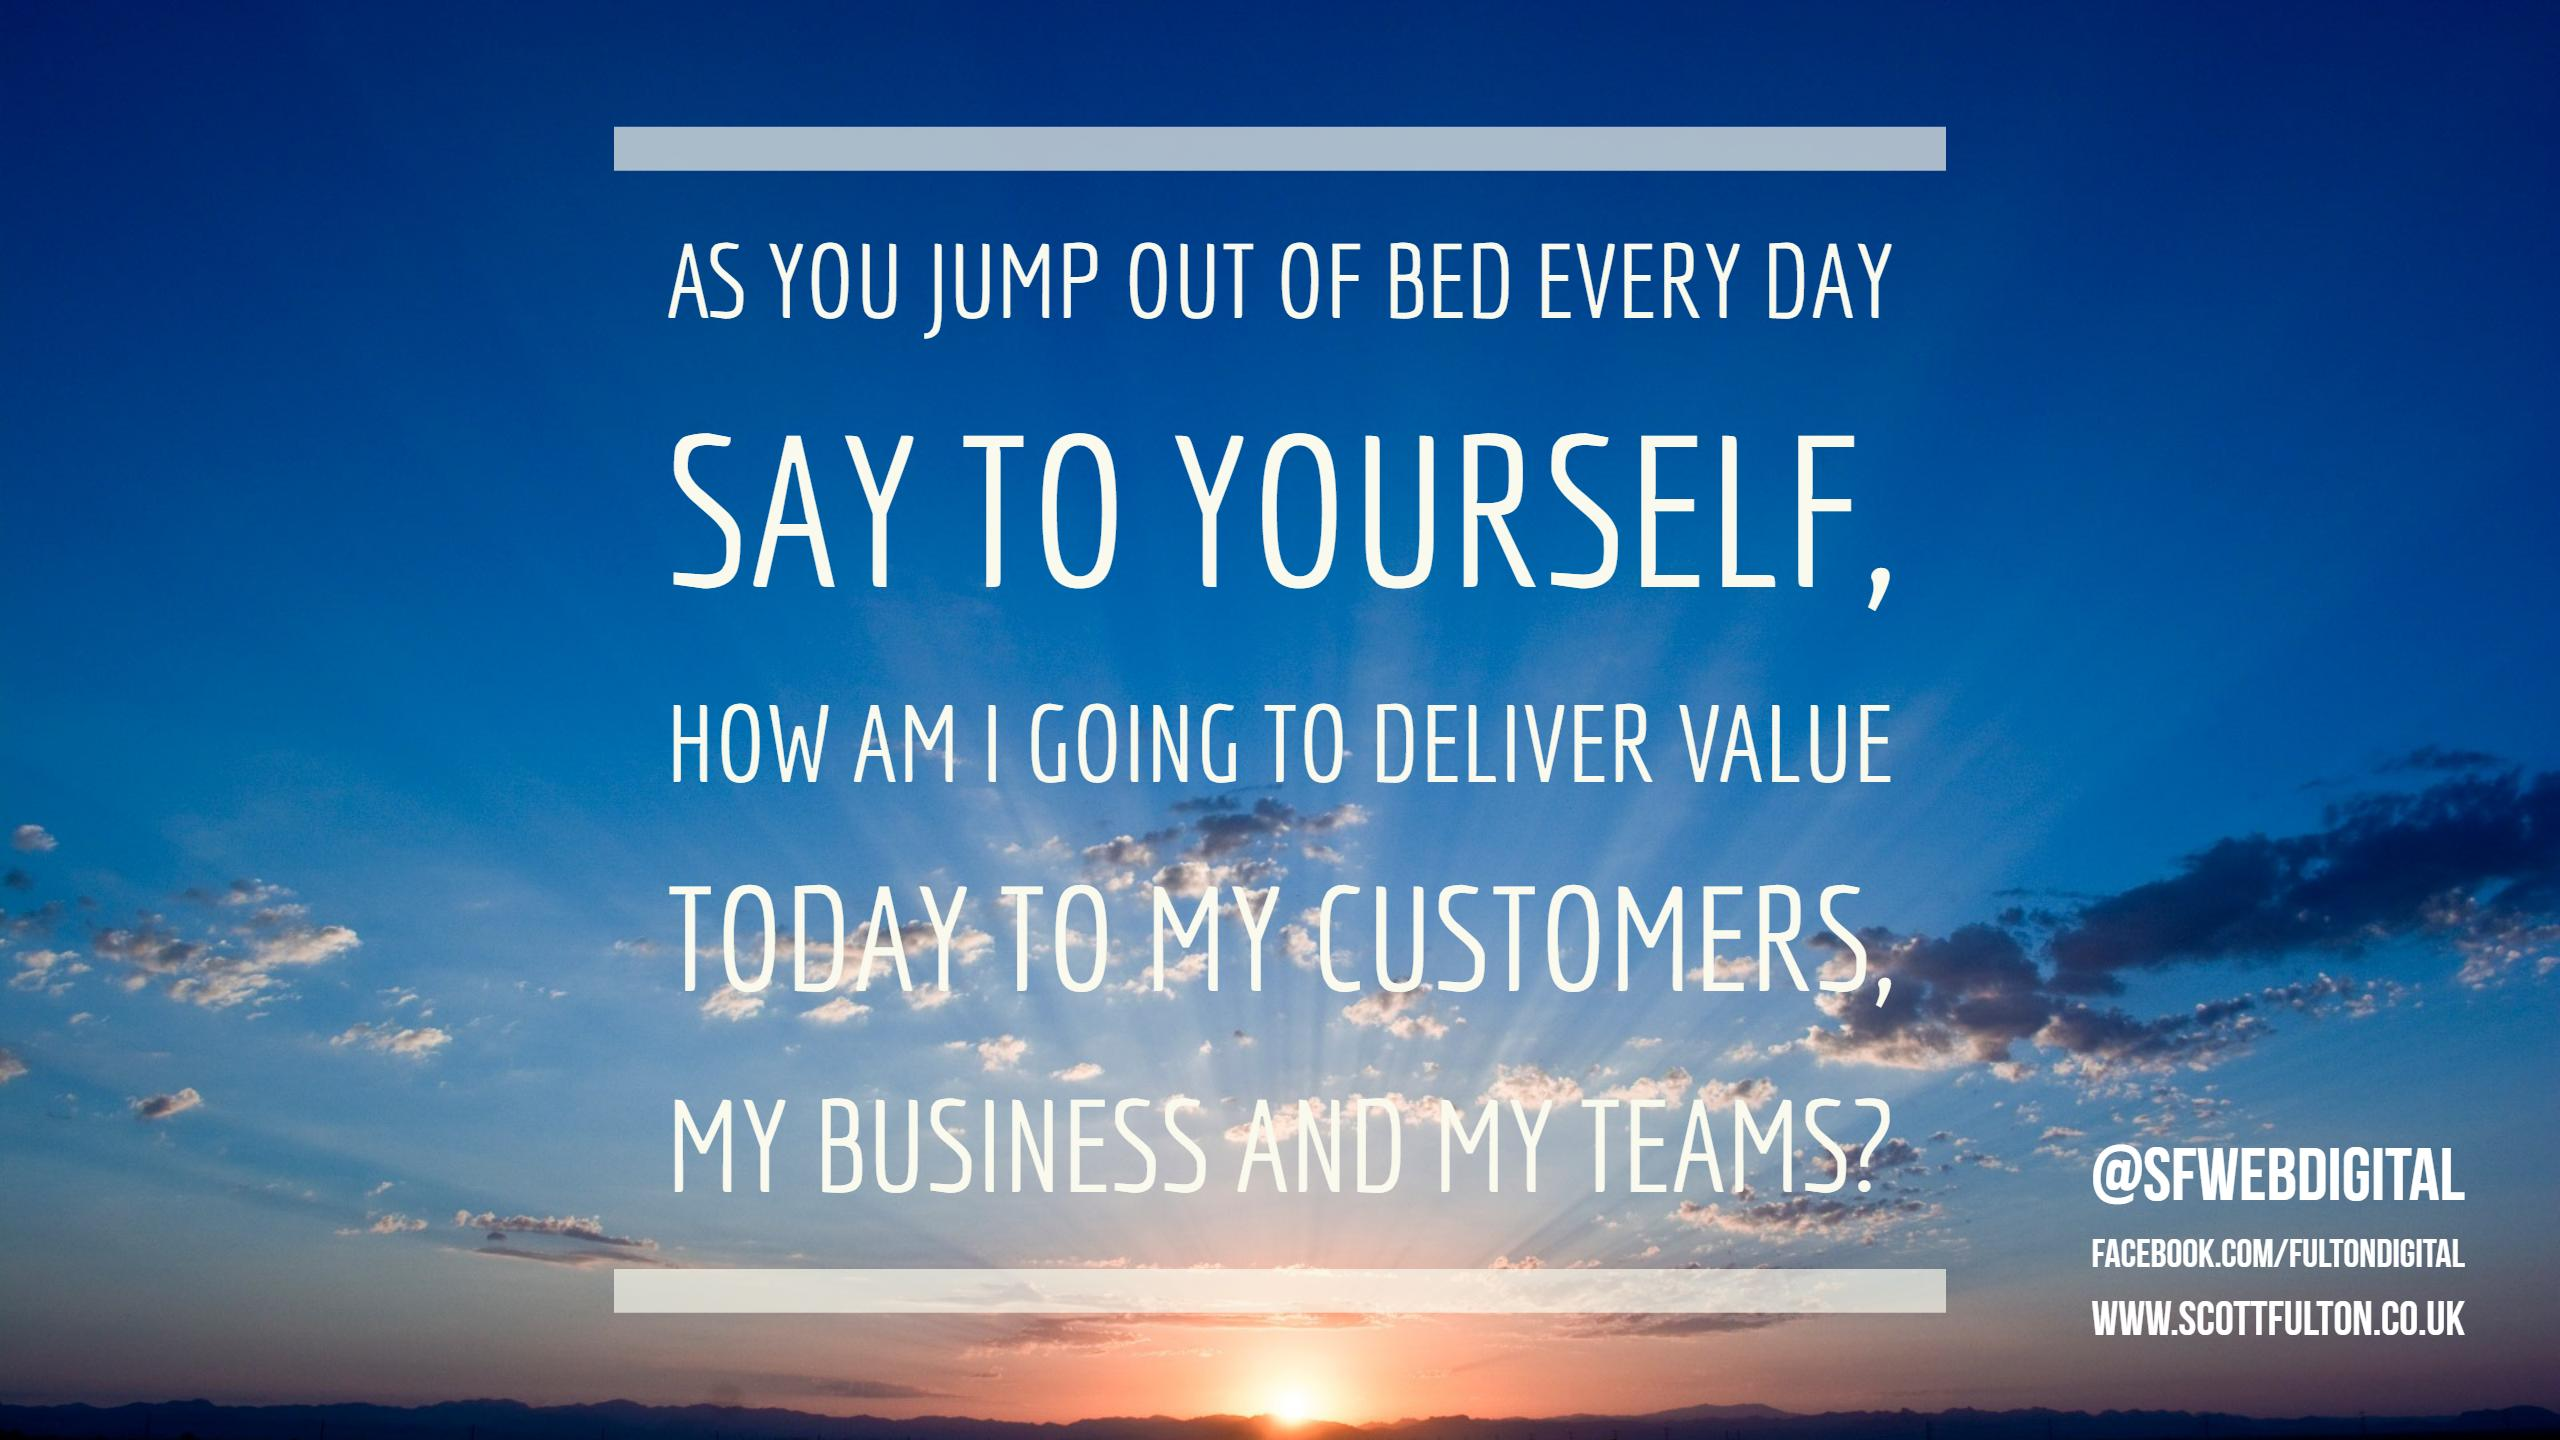 Deliver Value every day